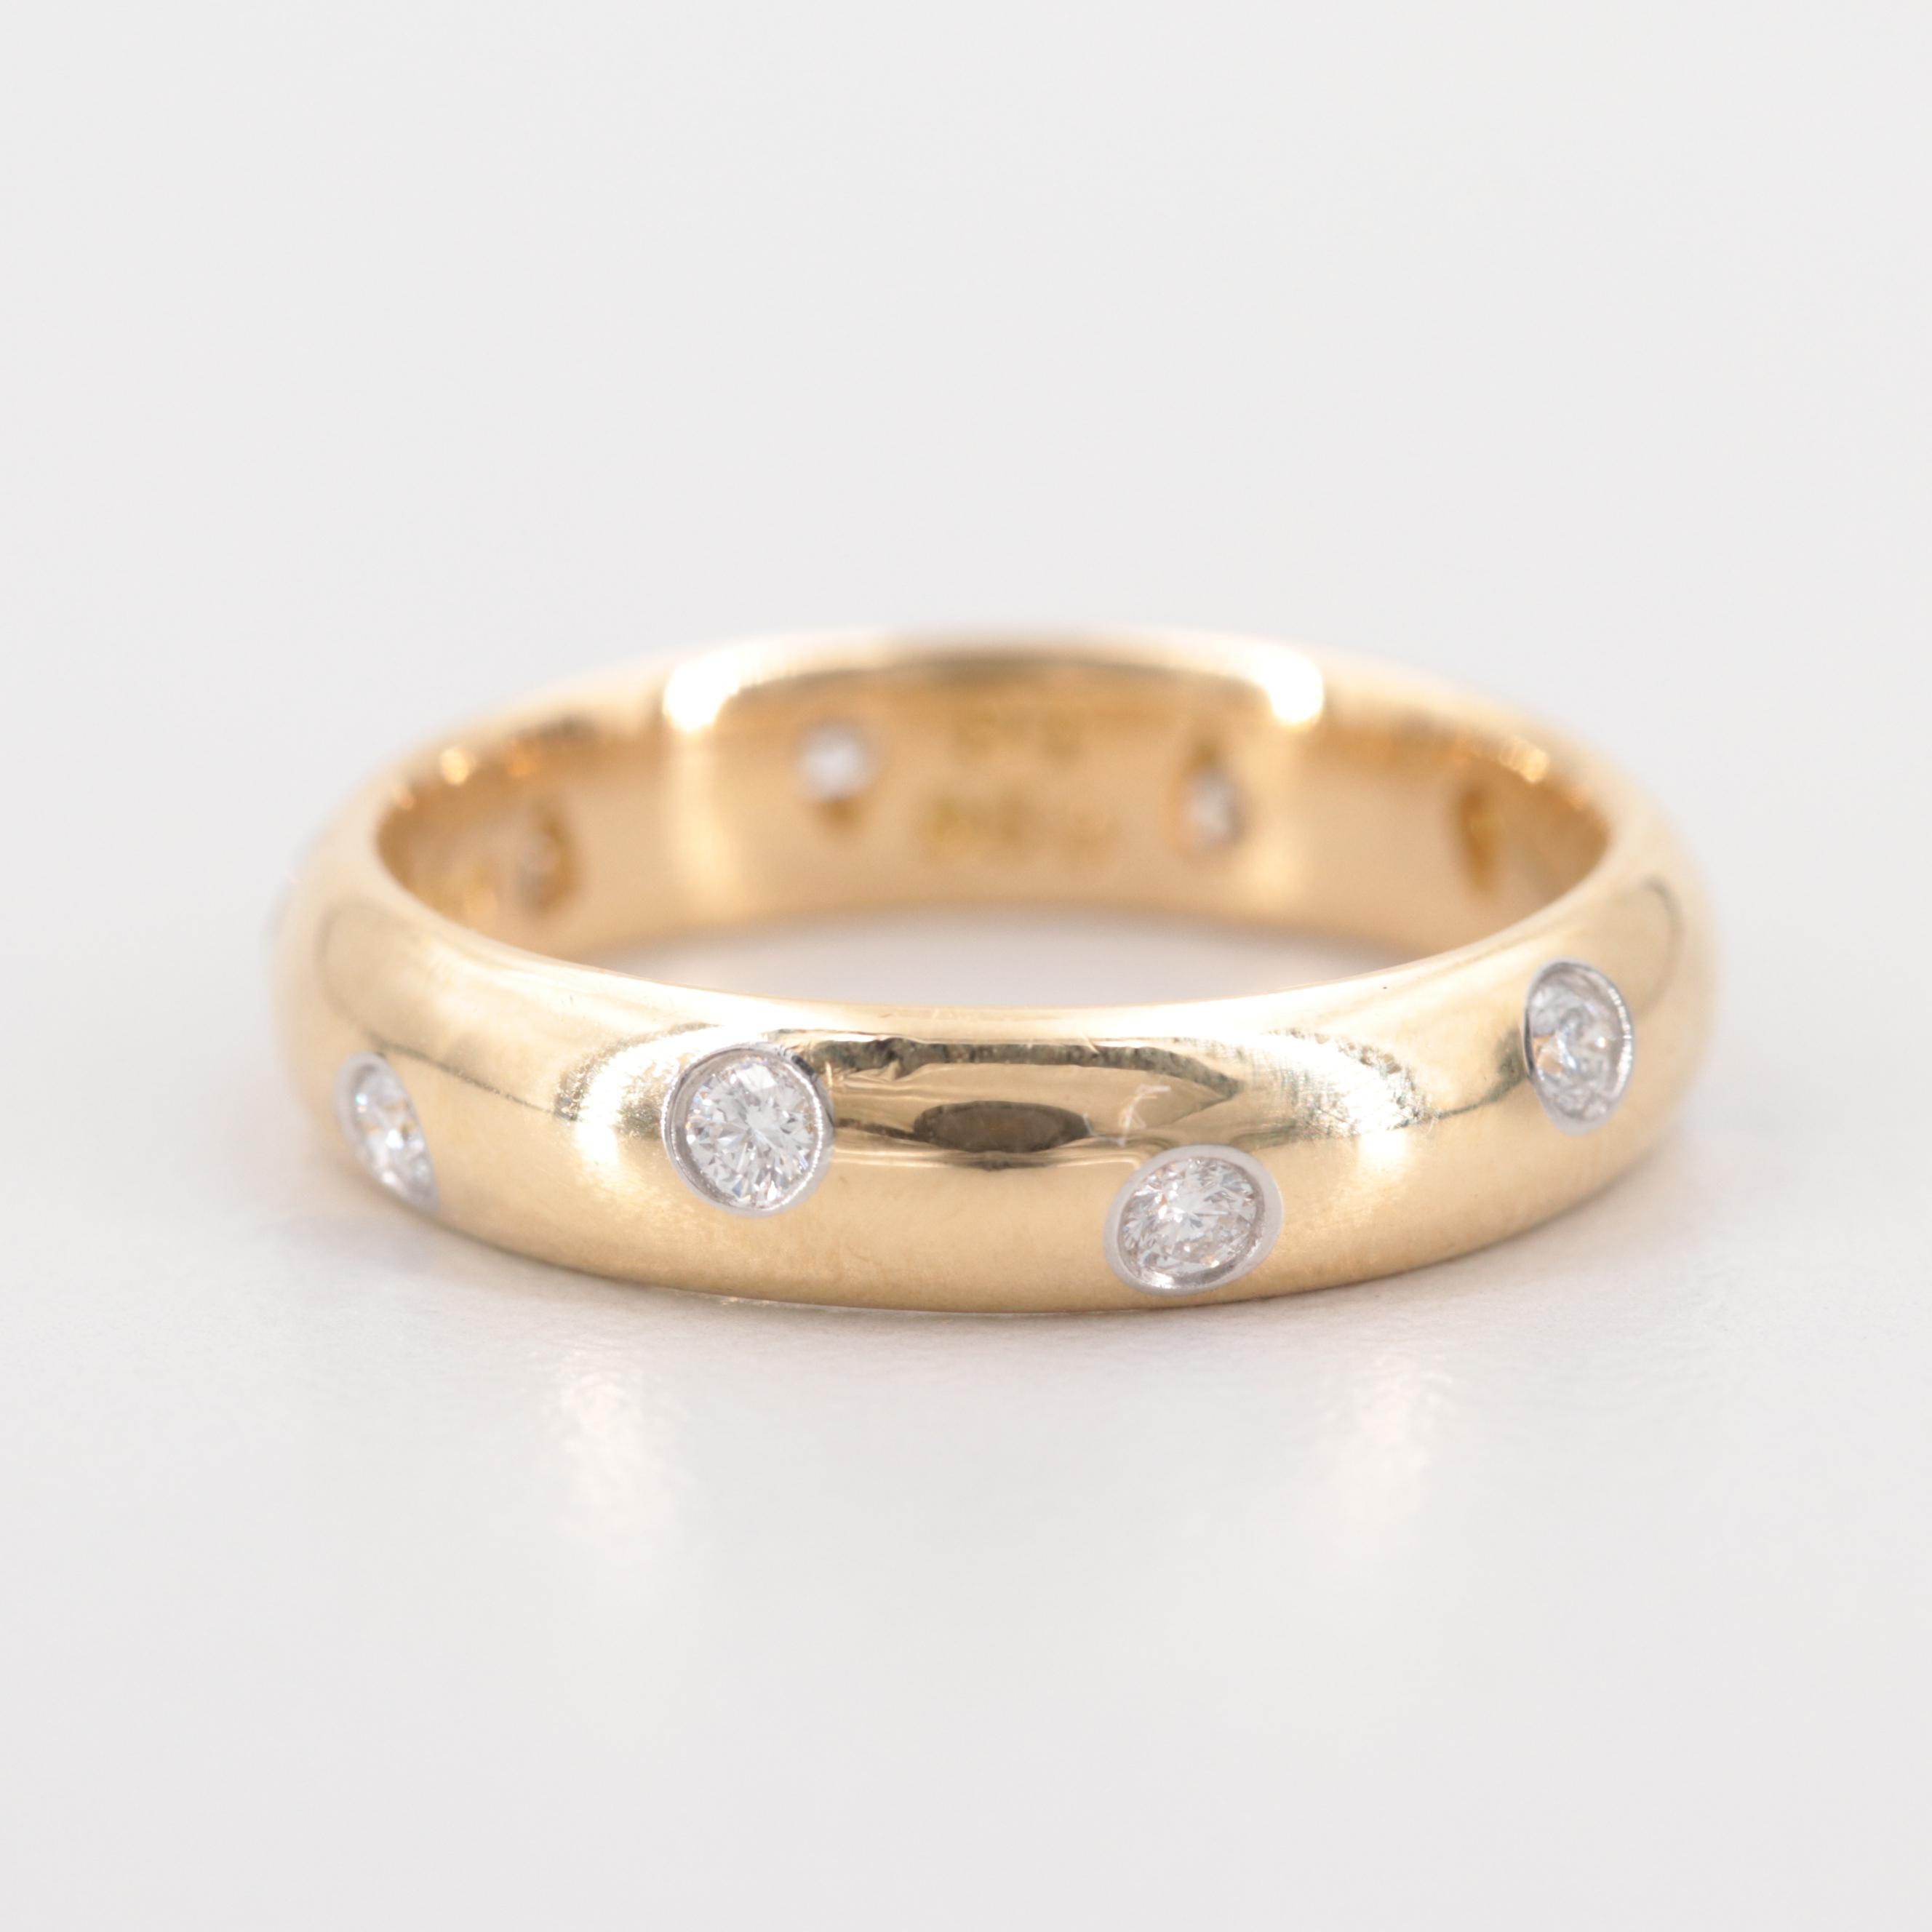 Tiffany & Co. 18K Yellow Gold Etoile Diamond Band With Platinum Accents